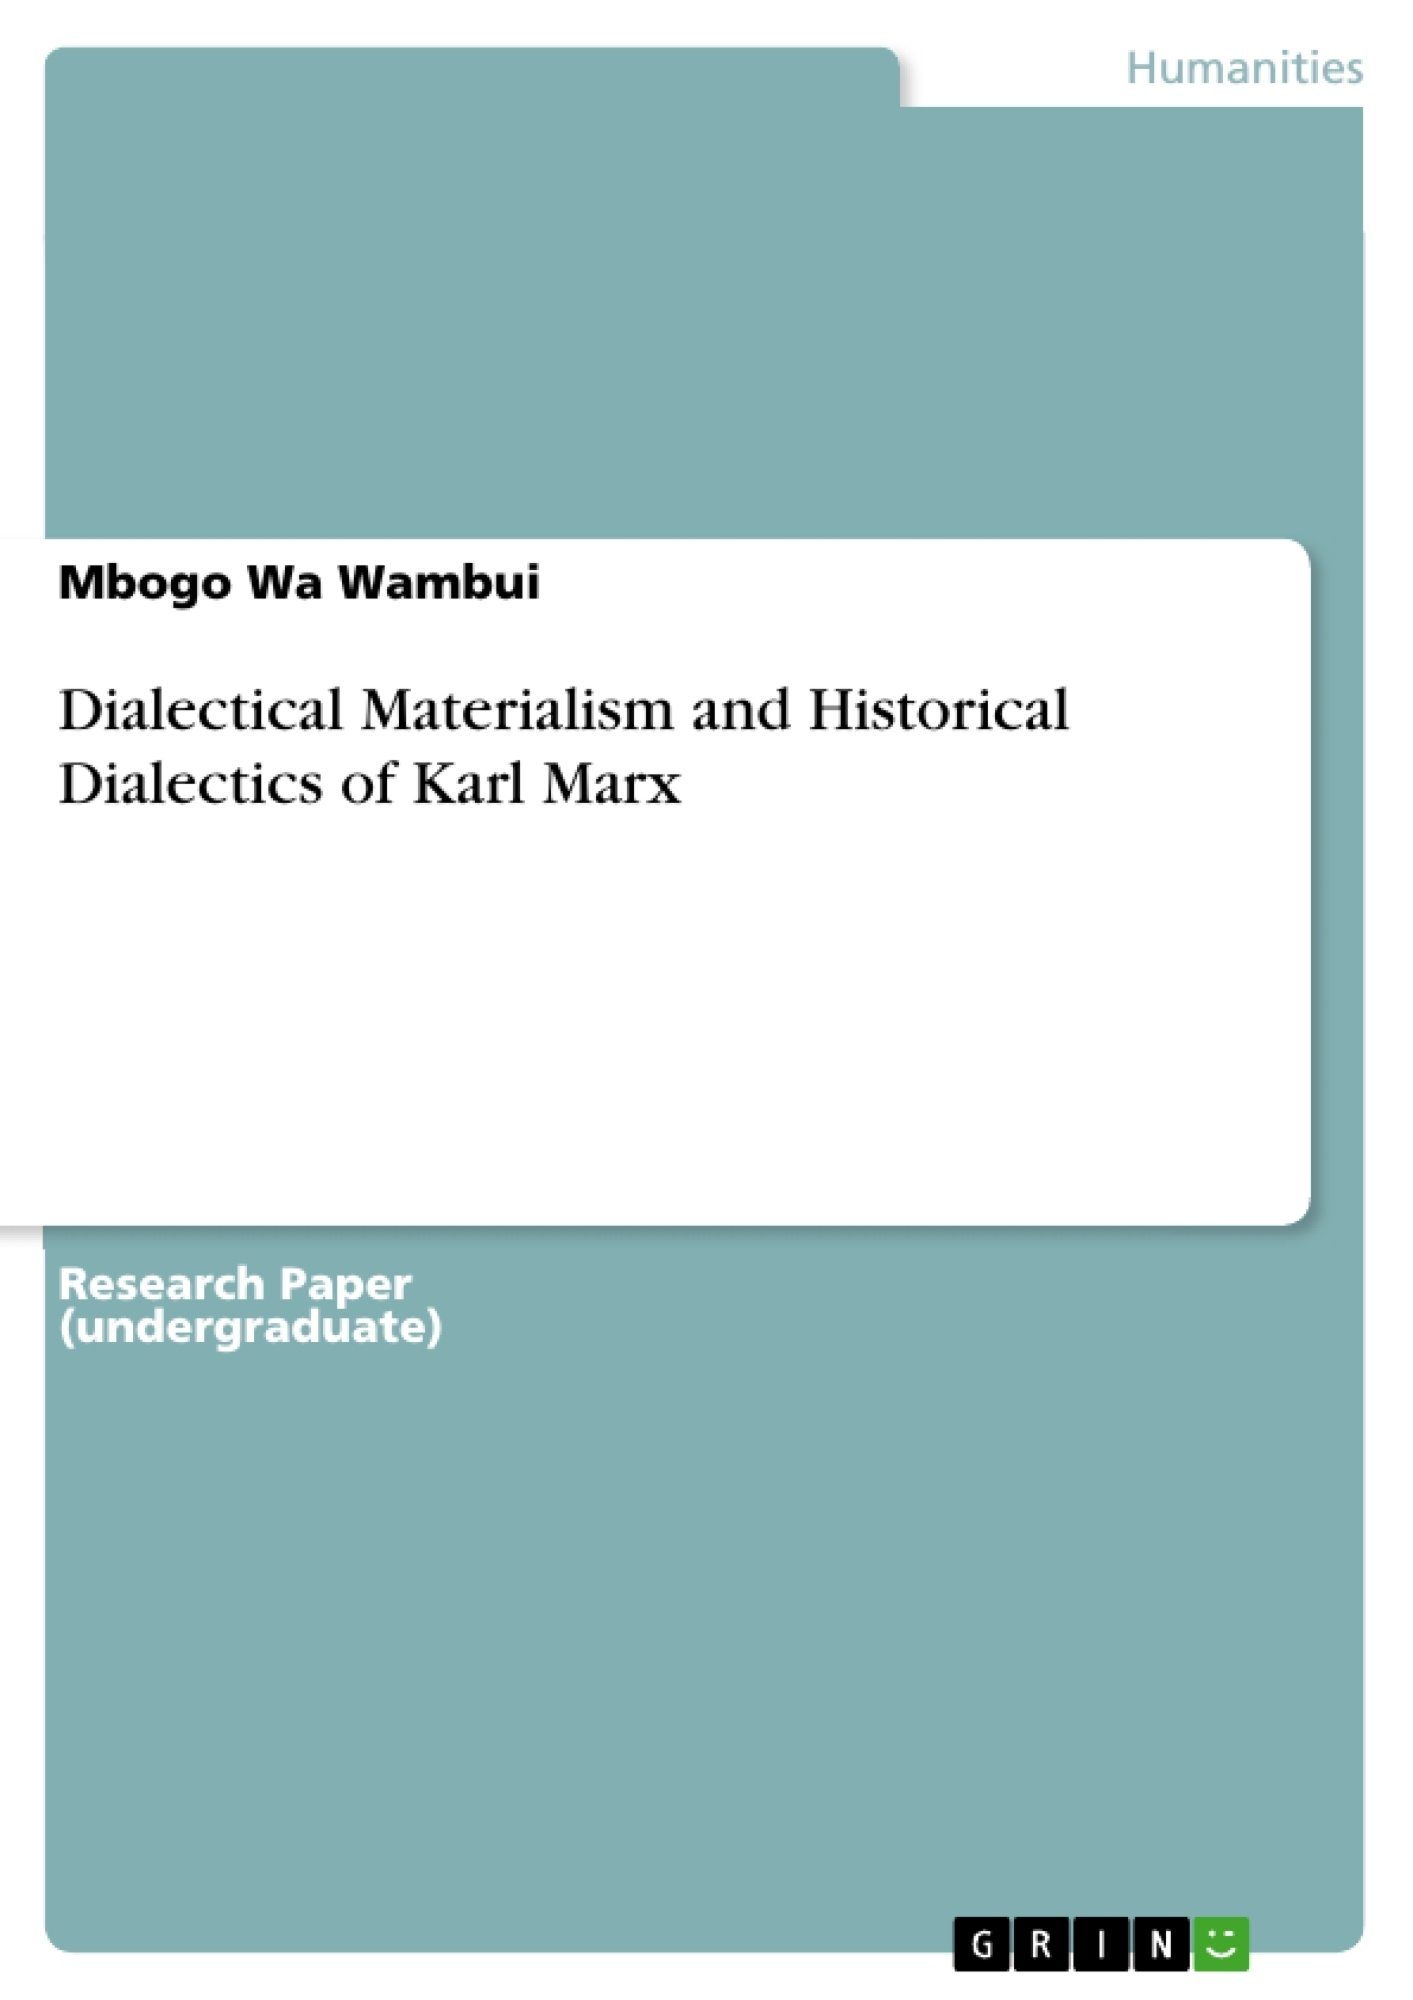 Title: Dialectical Materialism and Historical Dialectics of Karl Marx